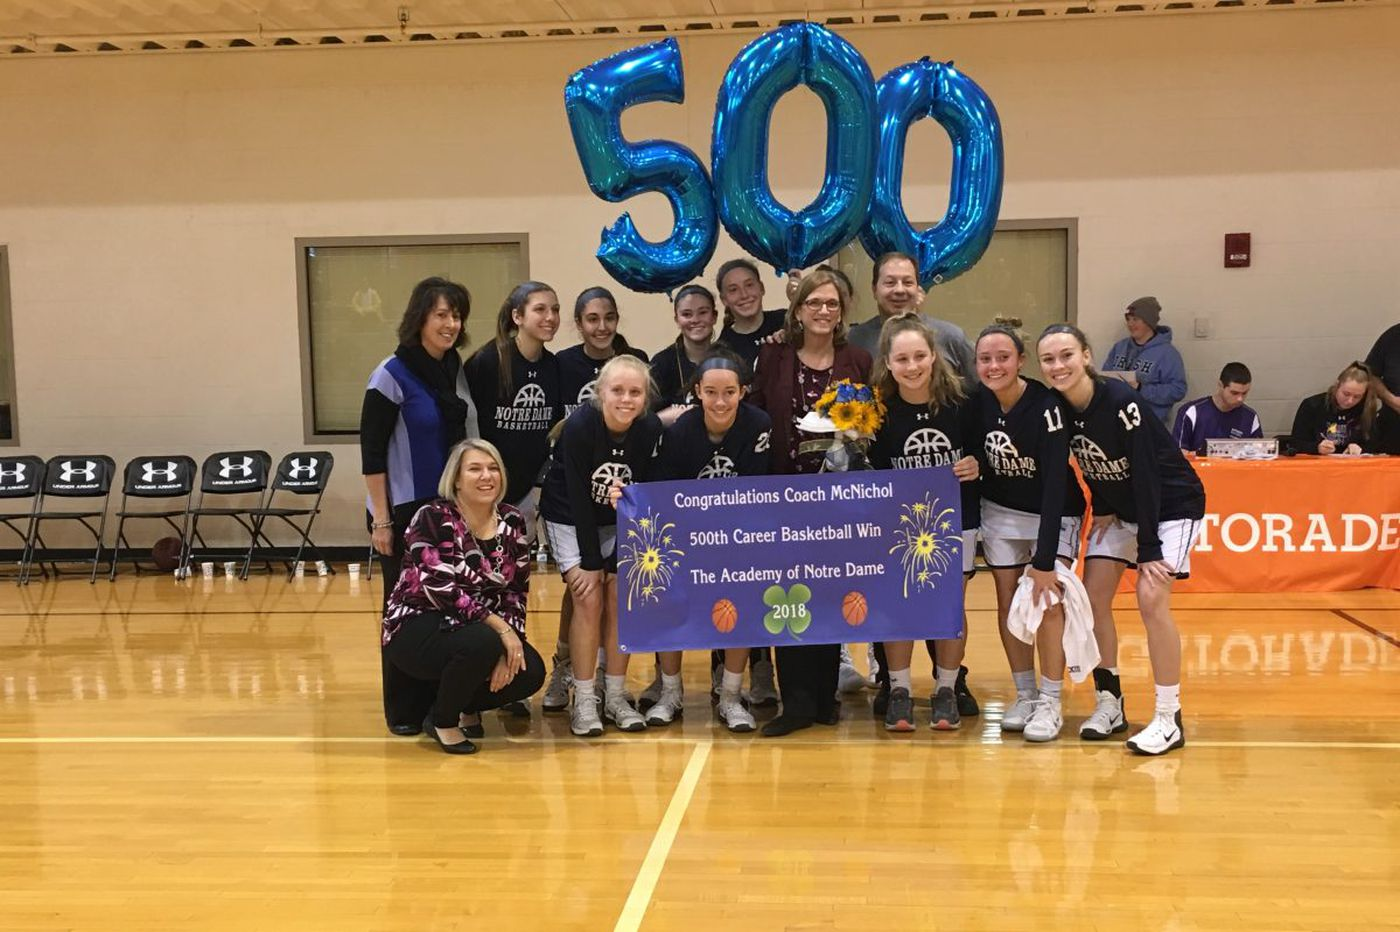 Notre Dame coach Mary Beth McNichol picks up career win No. 500